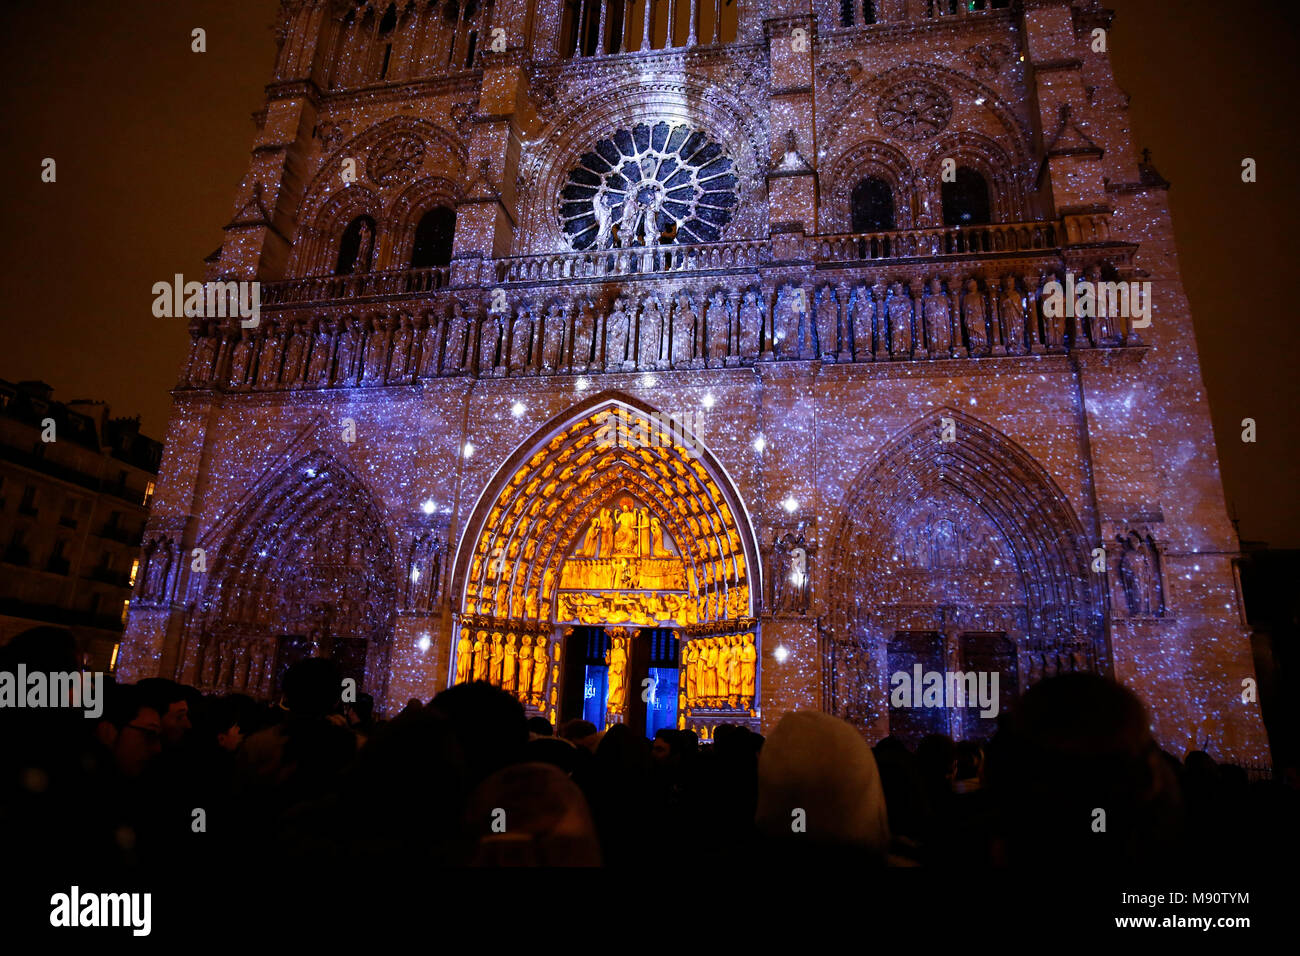 Sound and light show at Notre Dame de Paris cathedral, France. - Stock Image